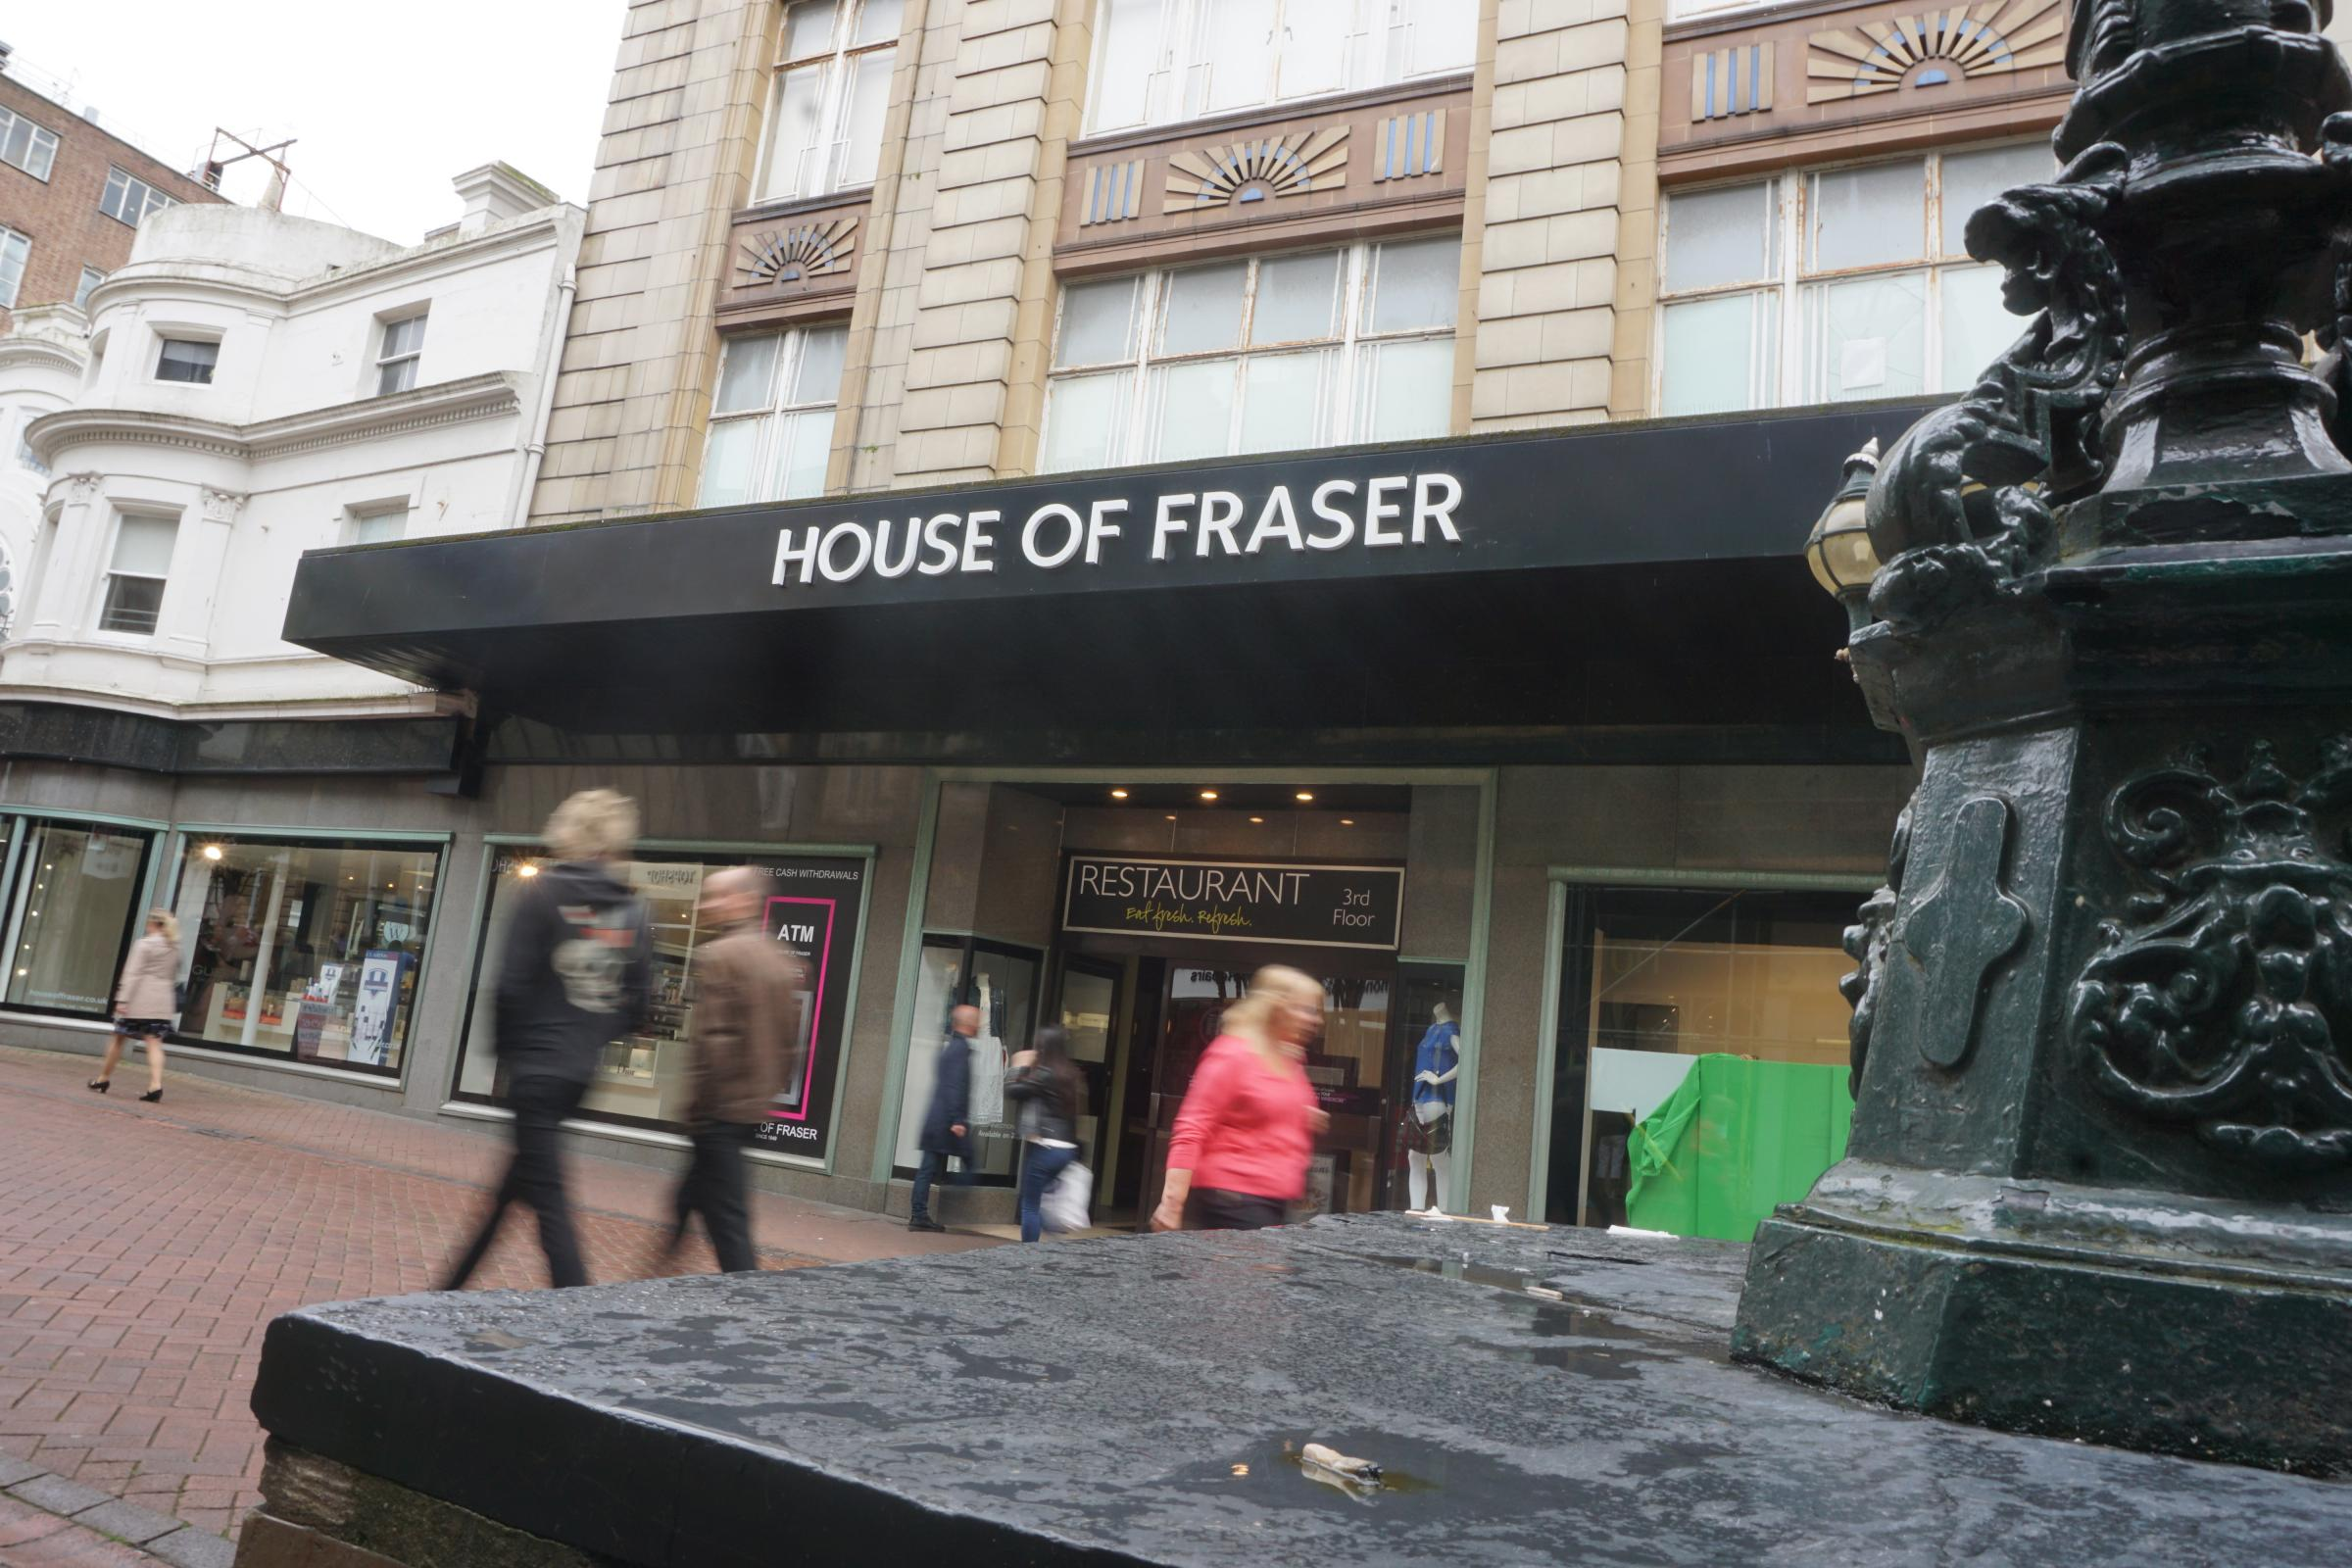 House of Fraser in Bournemouth is set to close